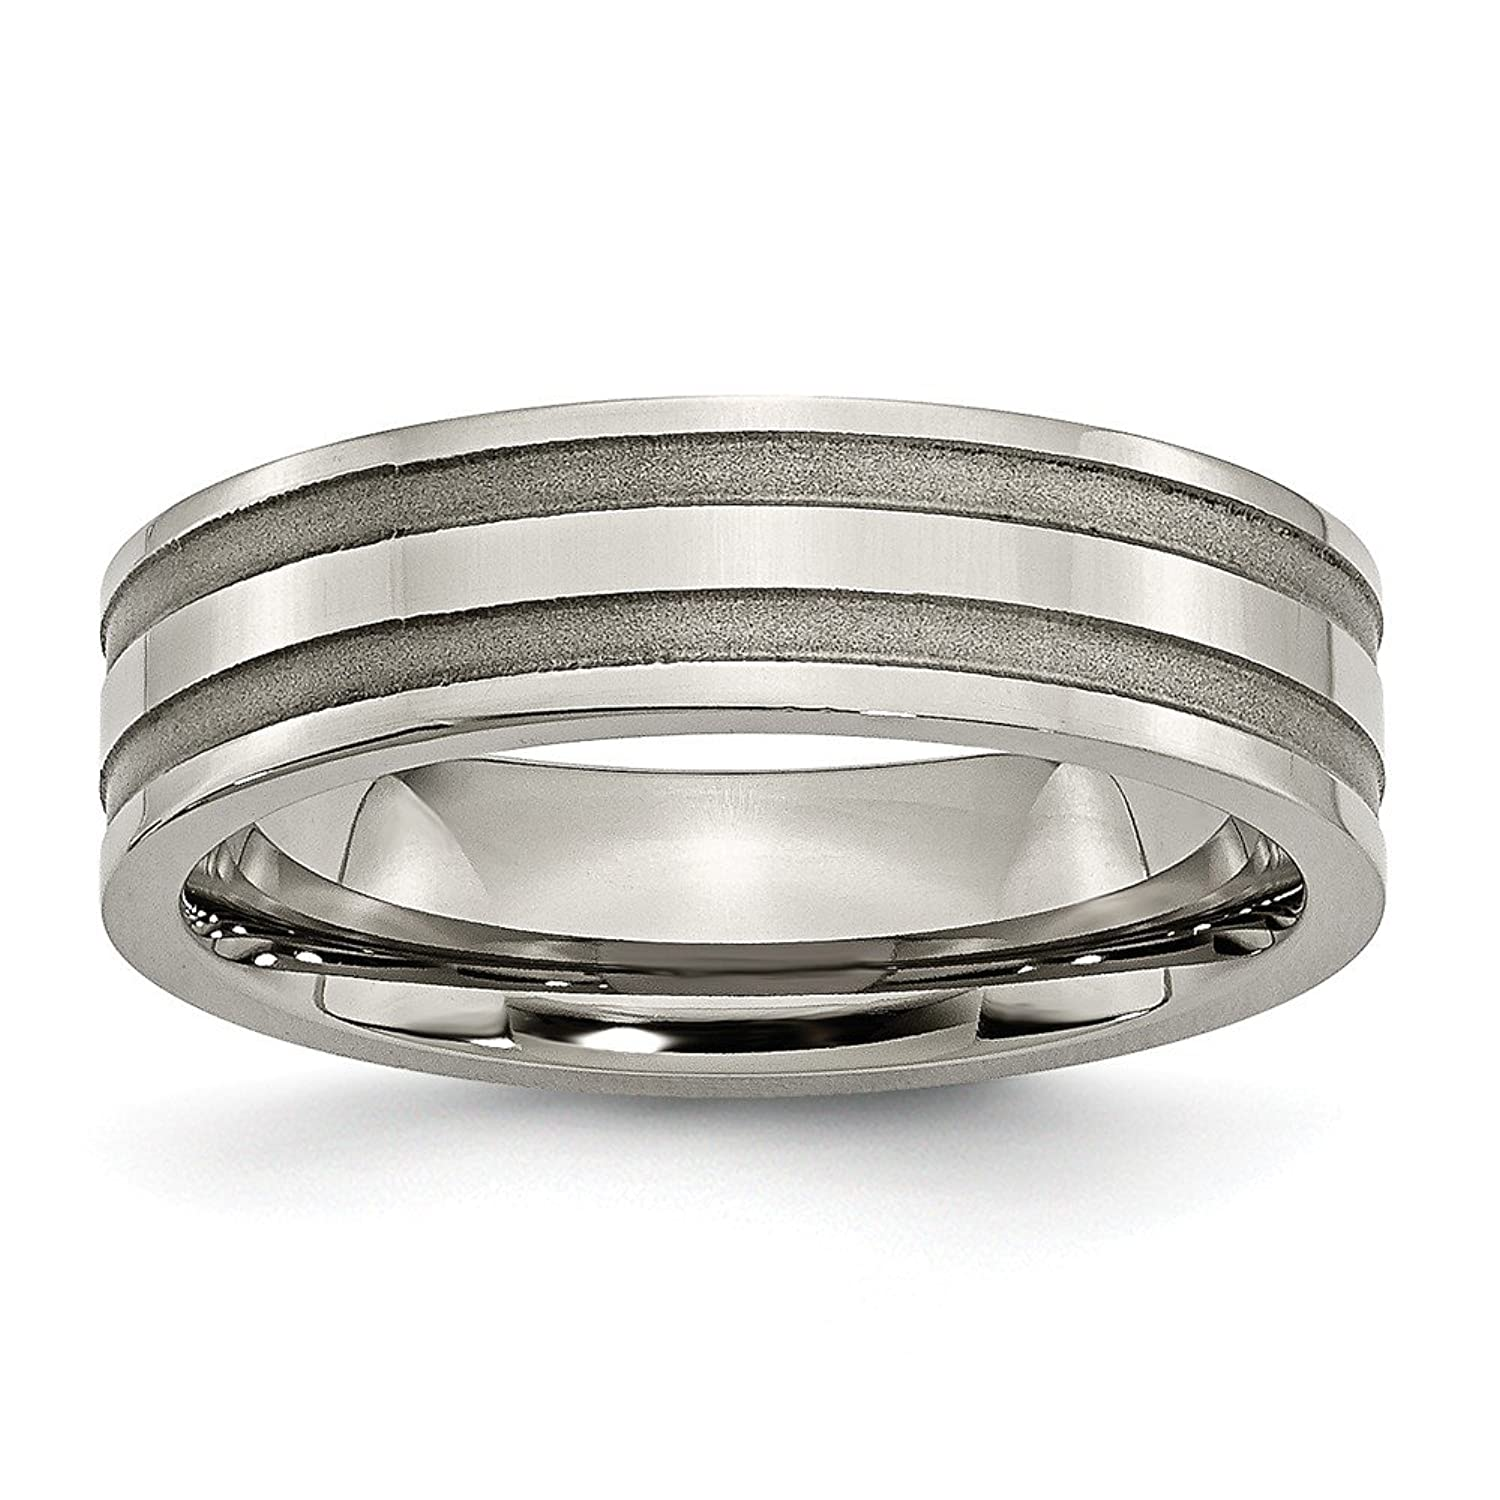 Titanium Grooved 6mm Brushed and Polished Band, Size 13